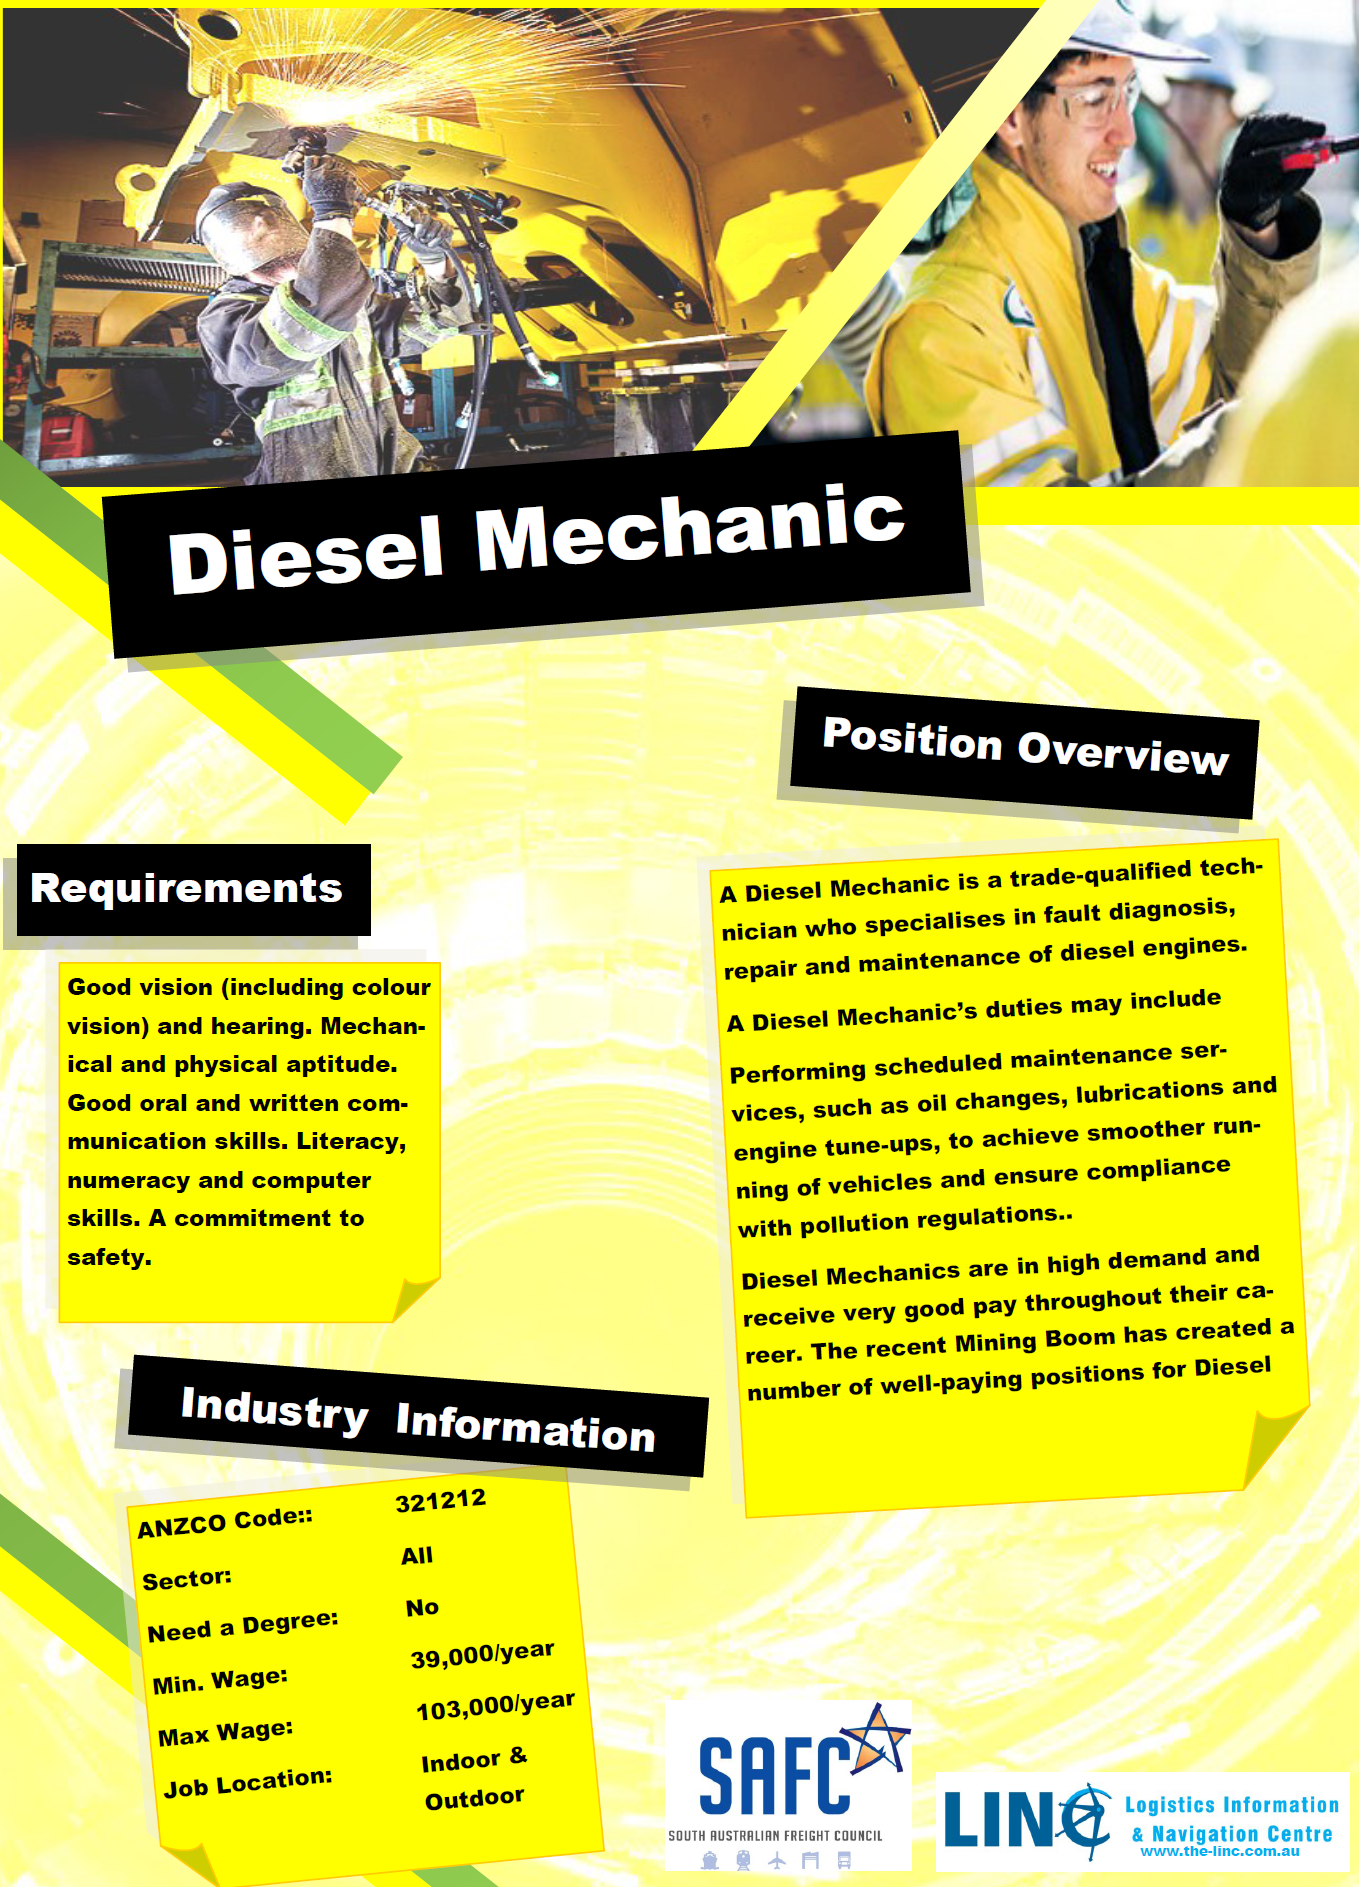 Diesel Mechanic study physics in australia